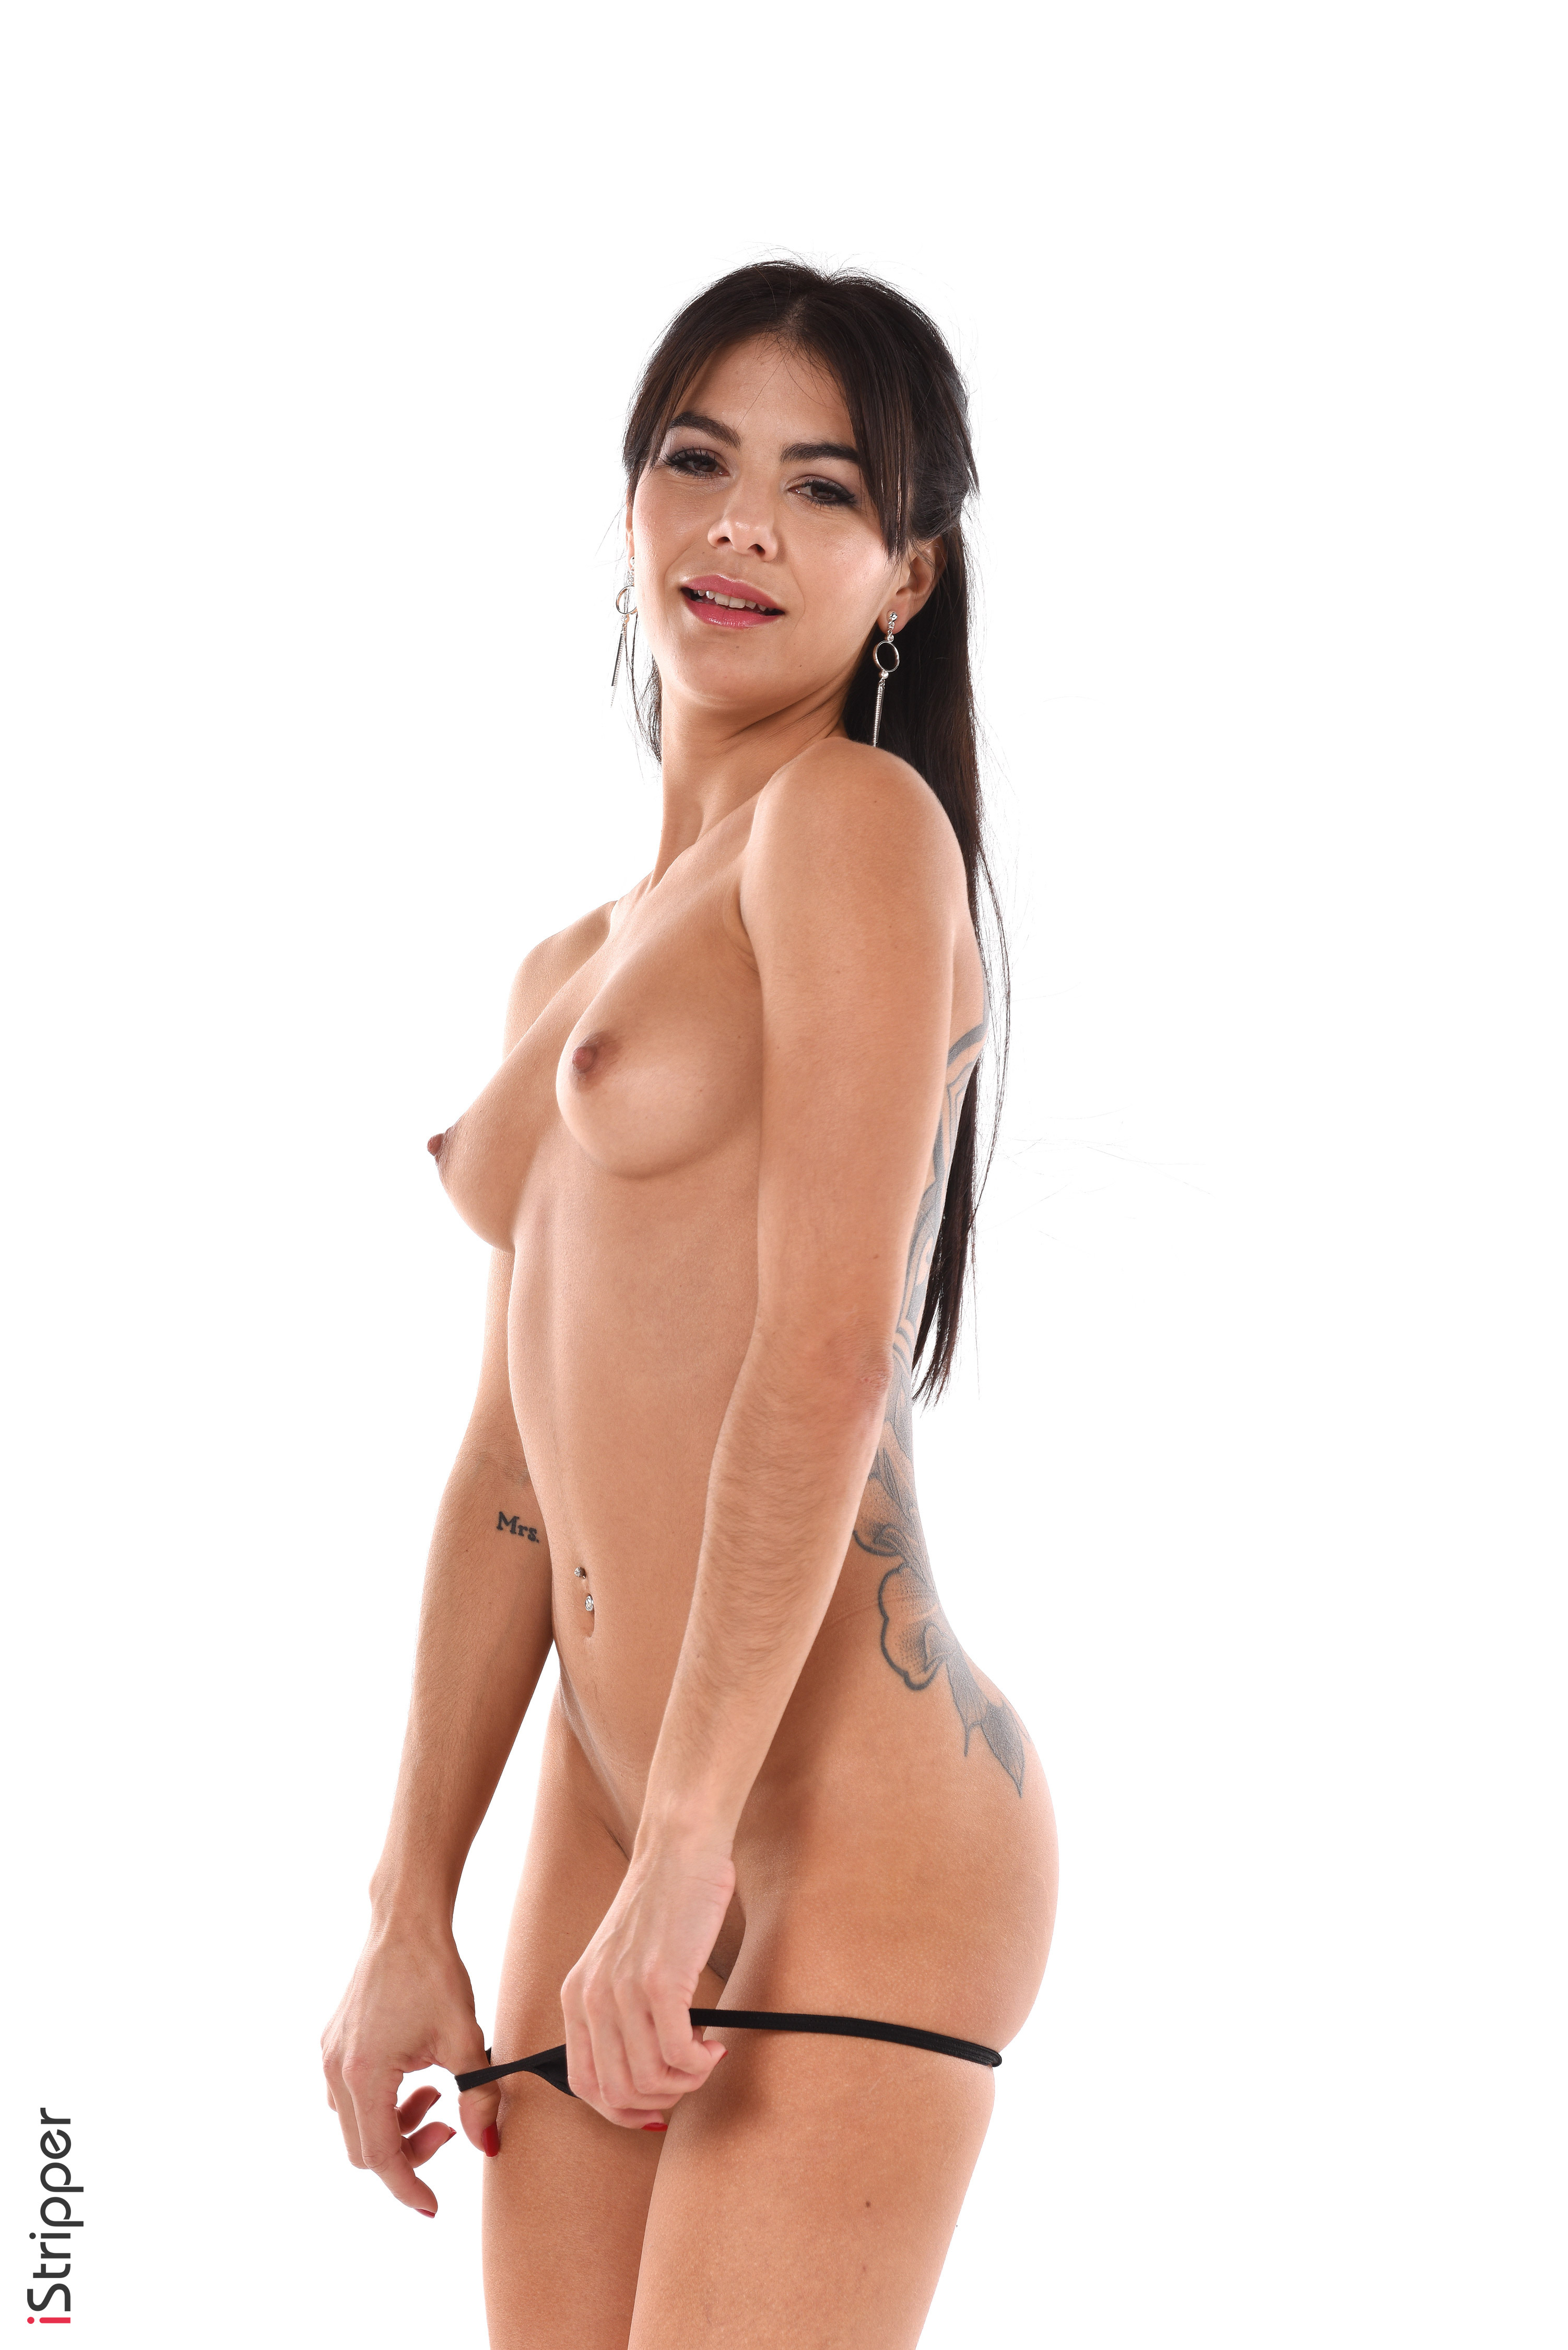 free nude girl wallpapers